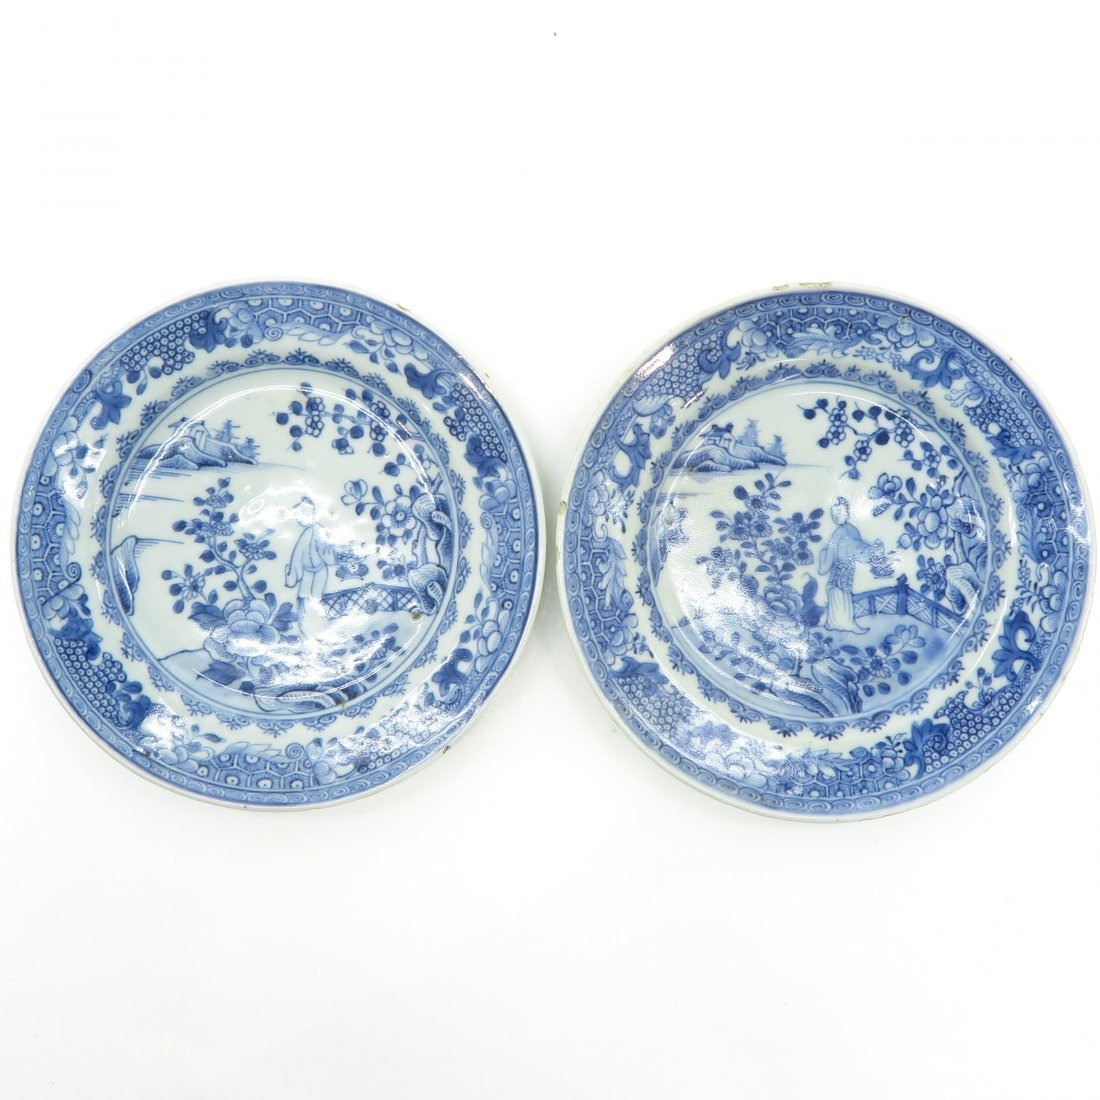 Lot of 18th Century China Porcelain Plates